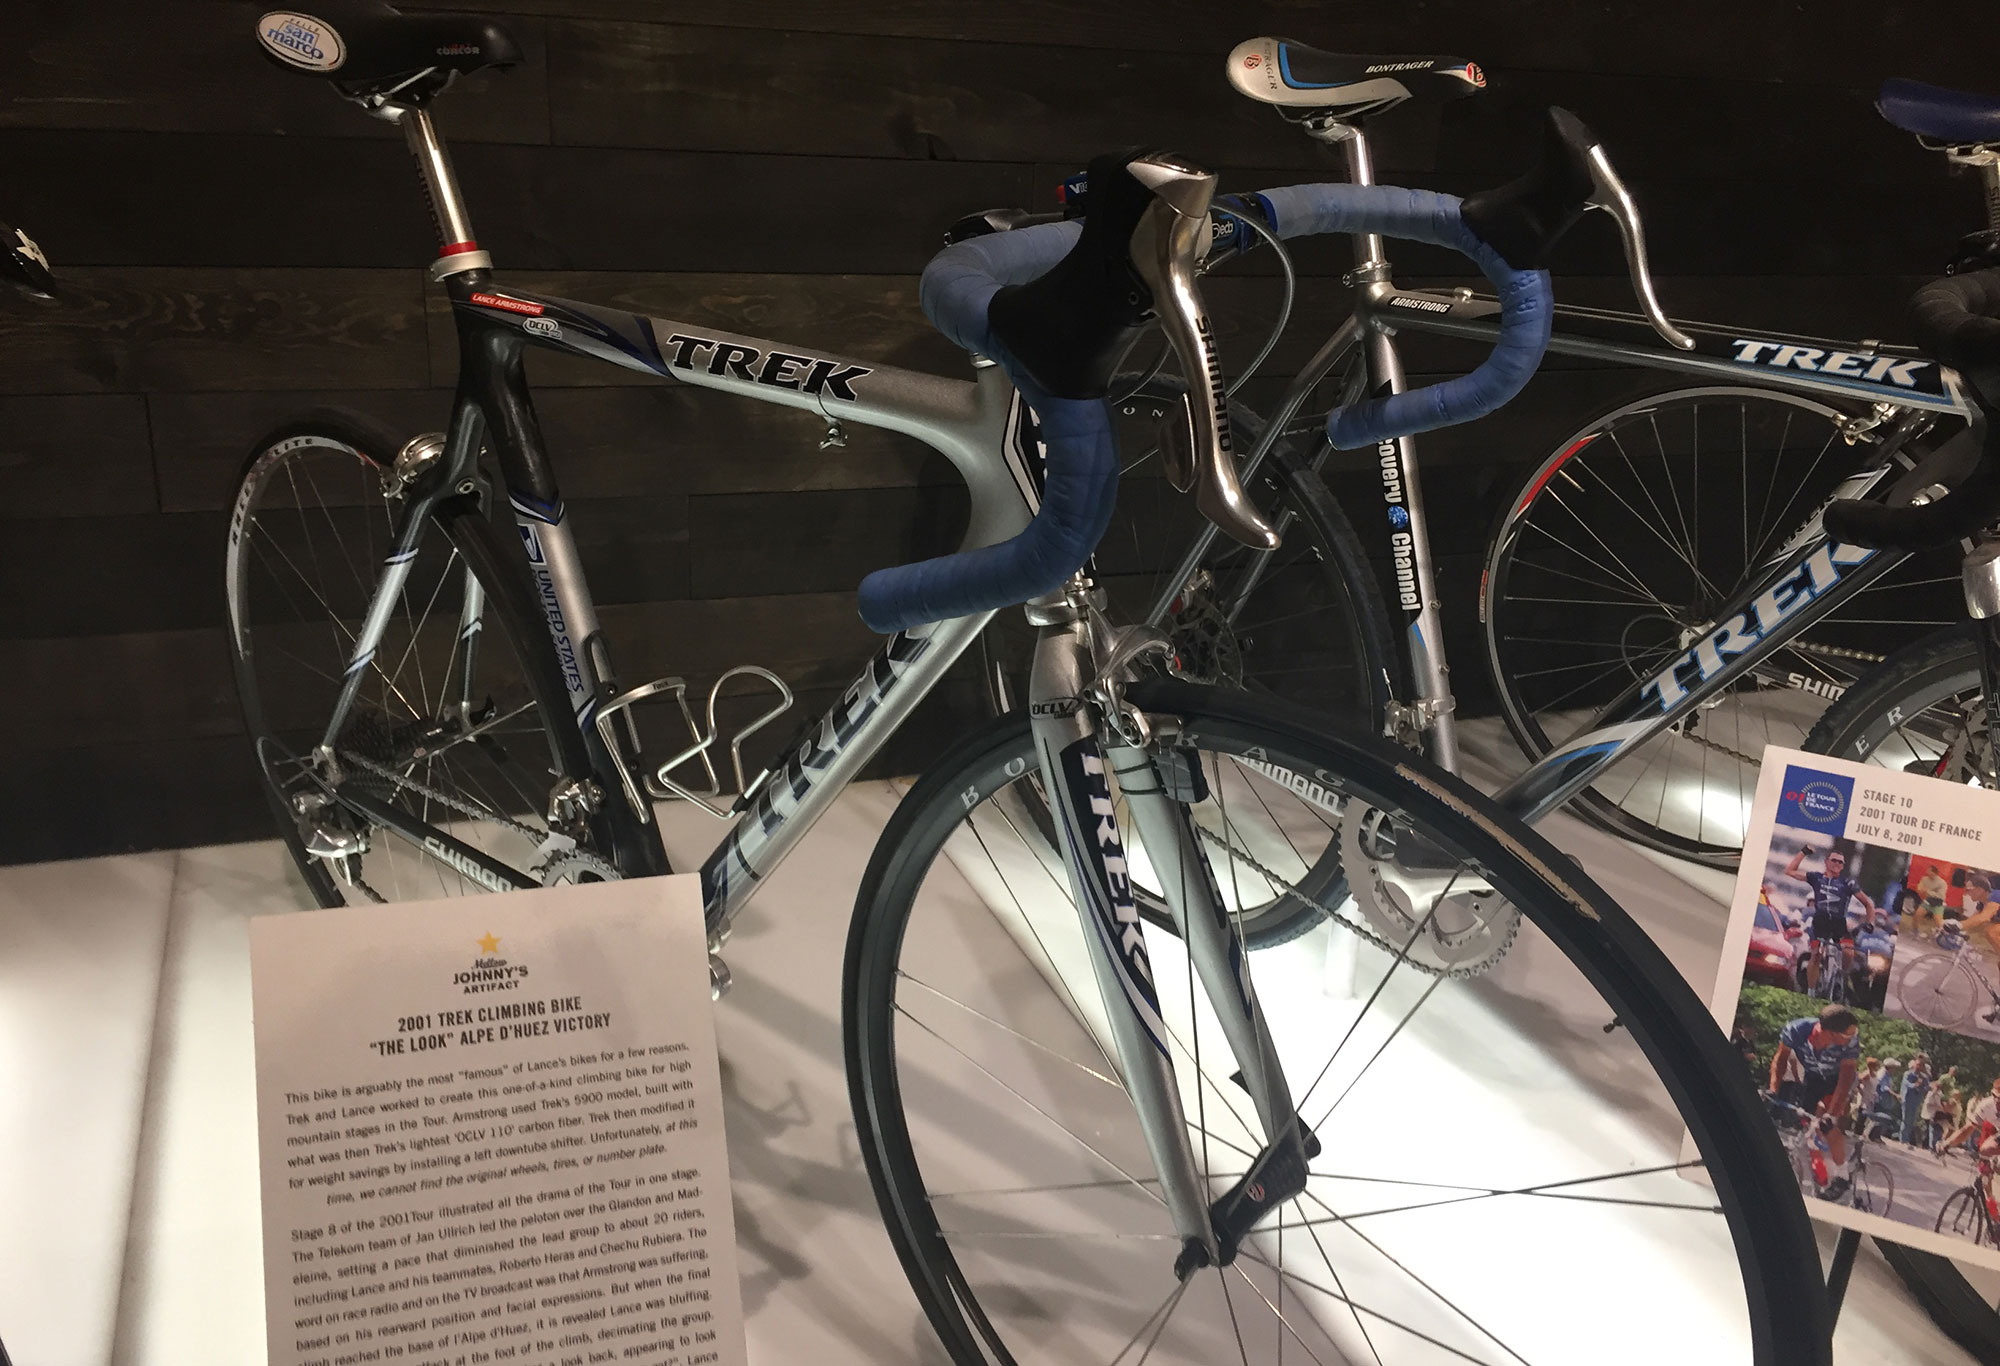 Lance Amrstrong's bike from 'The Look'